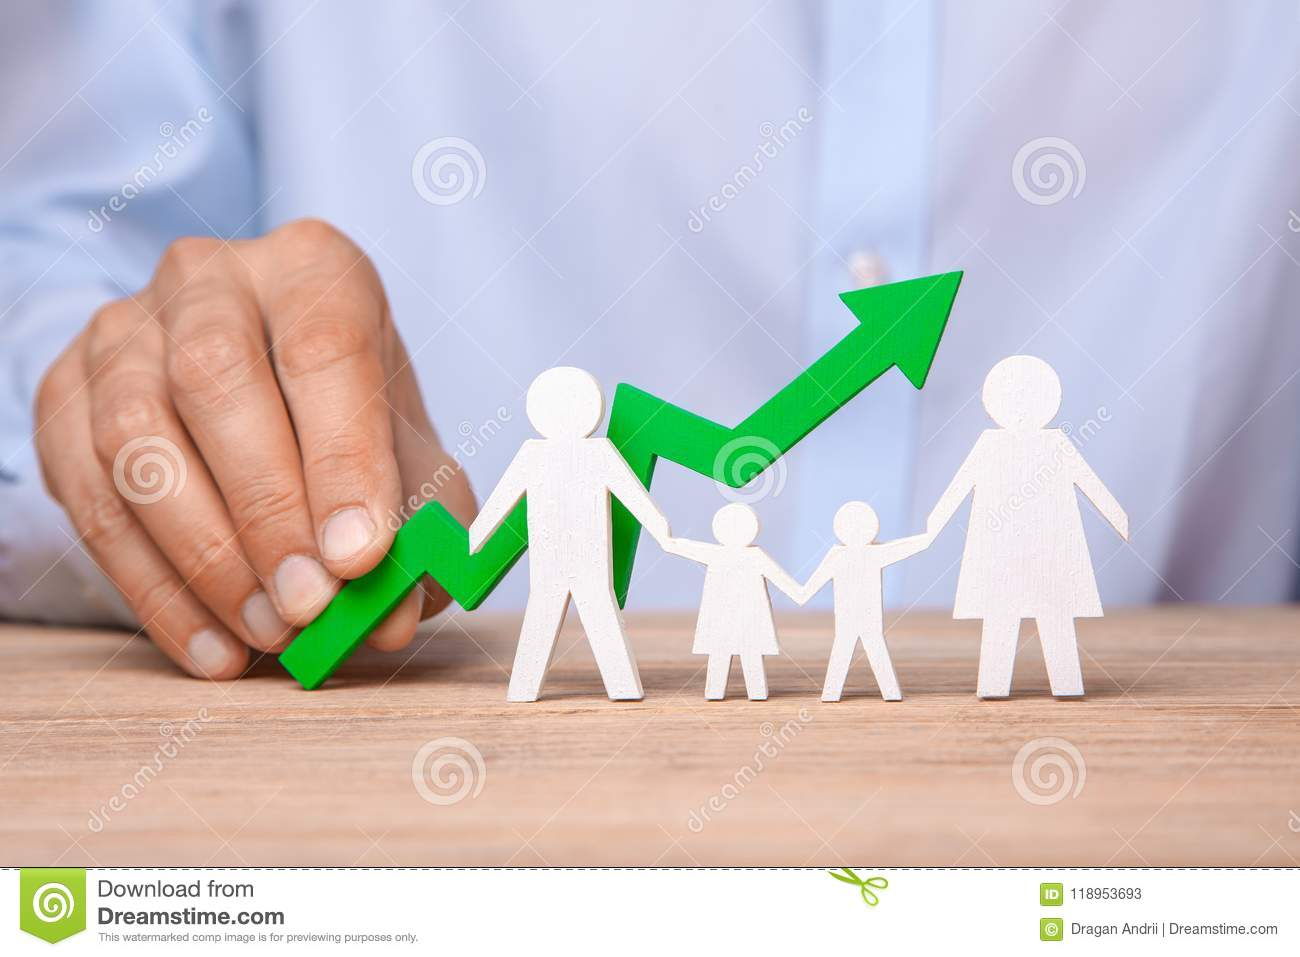 Growth of the family budget. Man holds green arrow up against the background of family